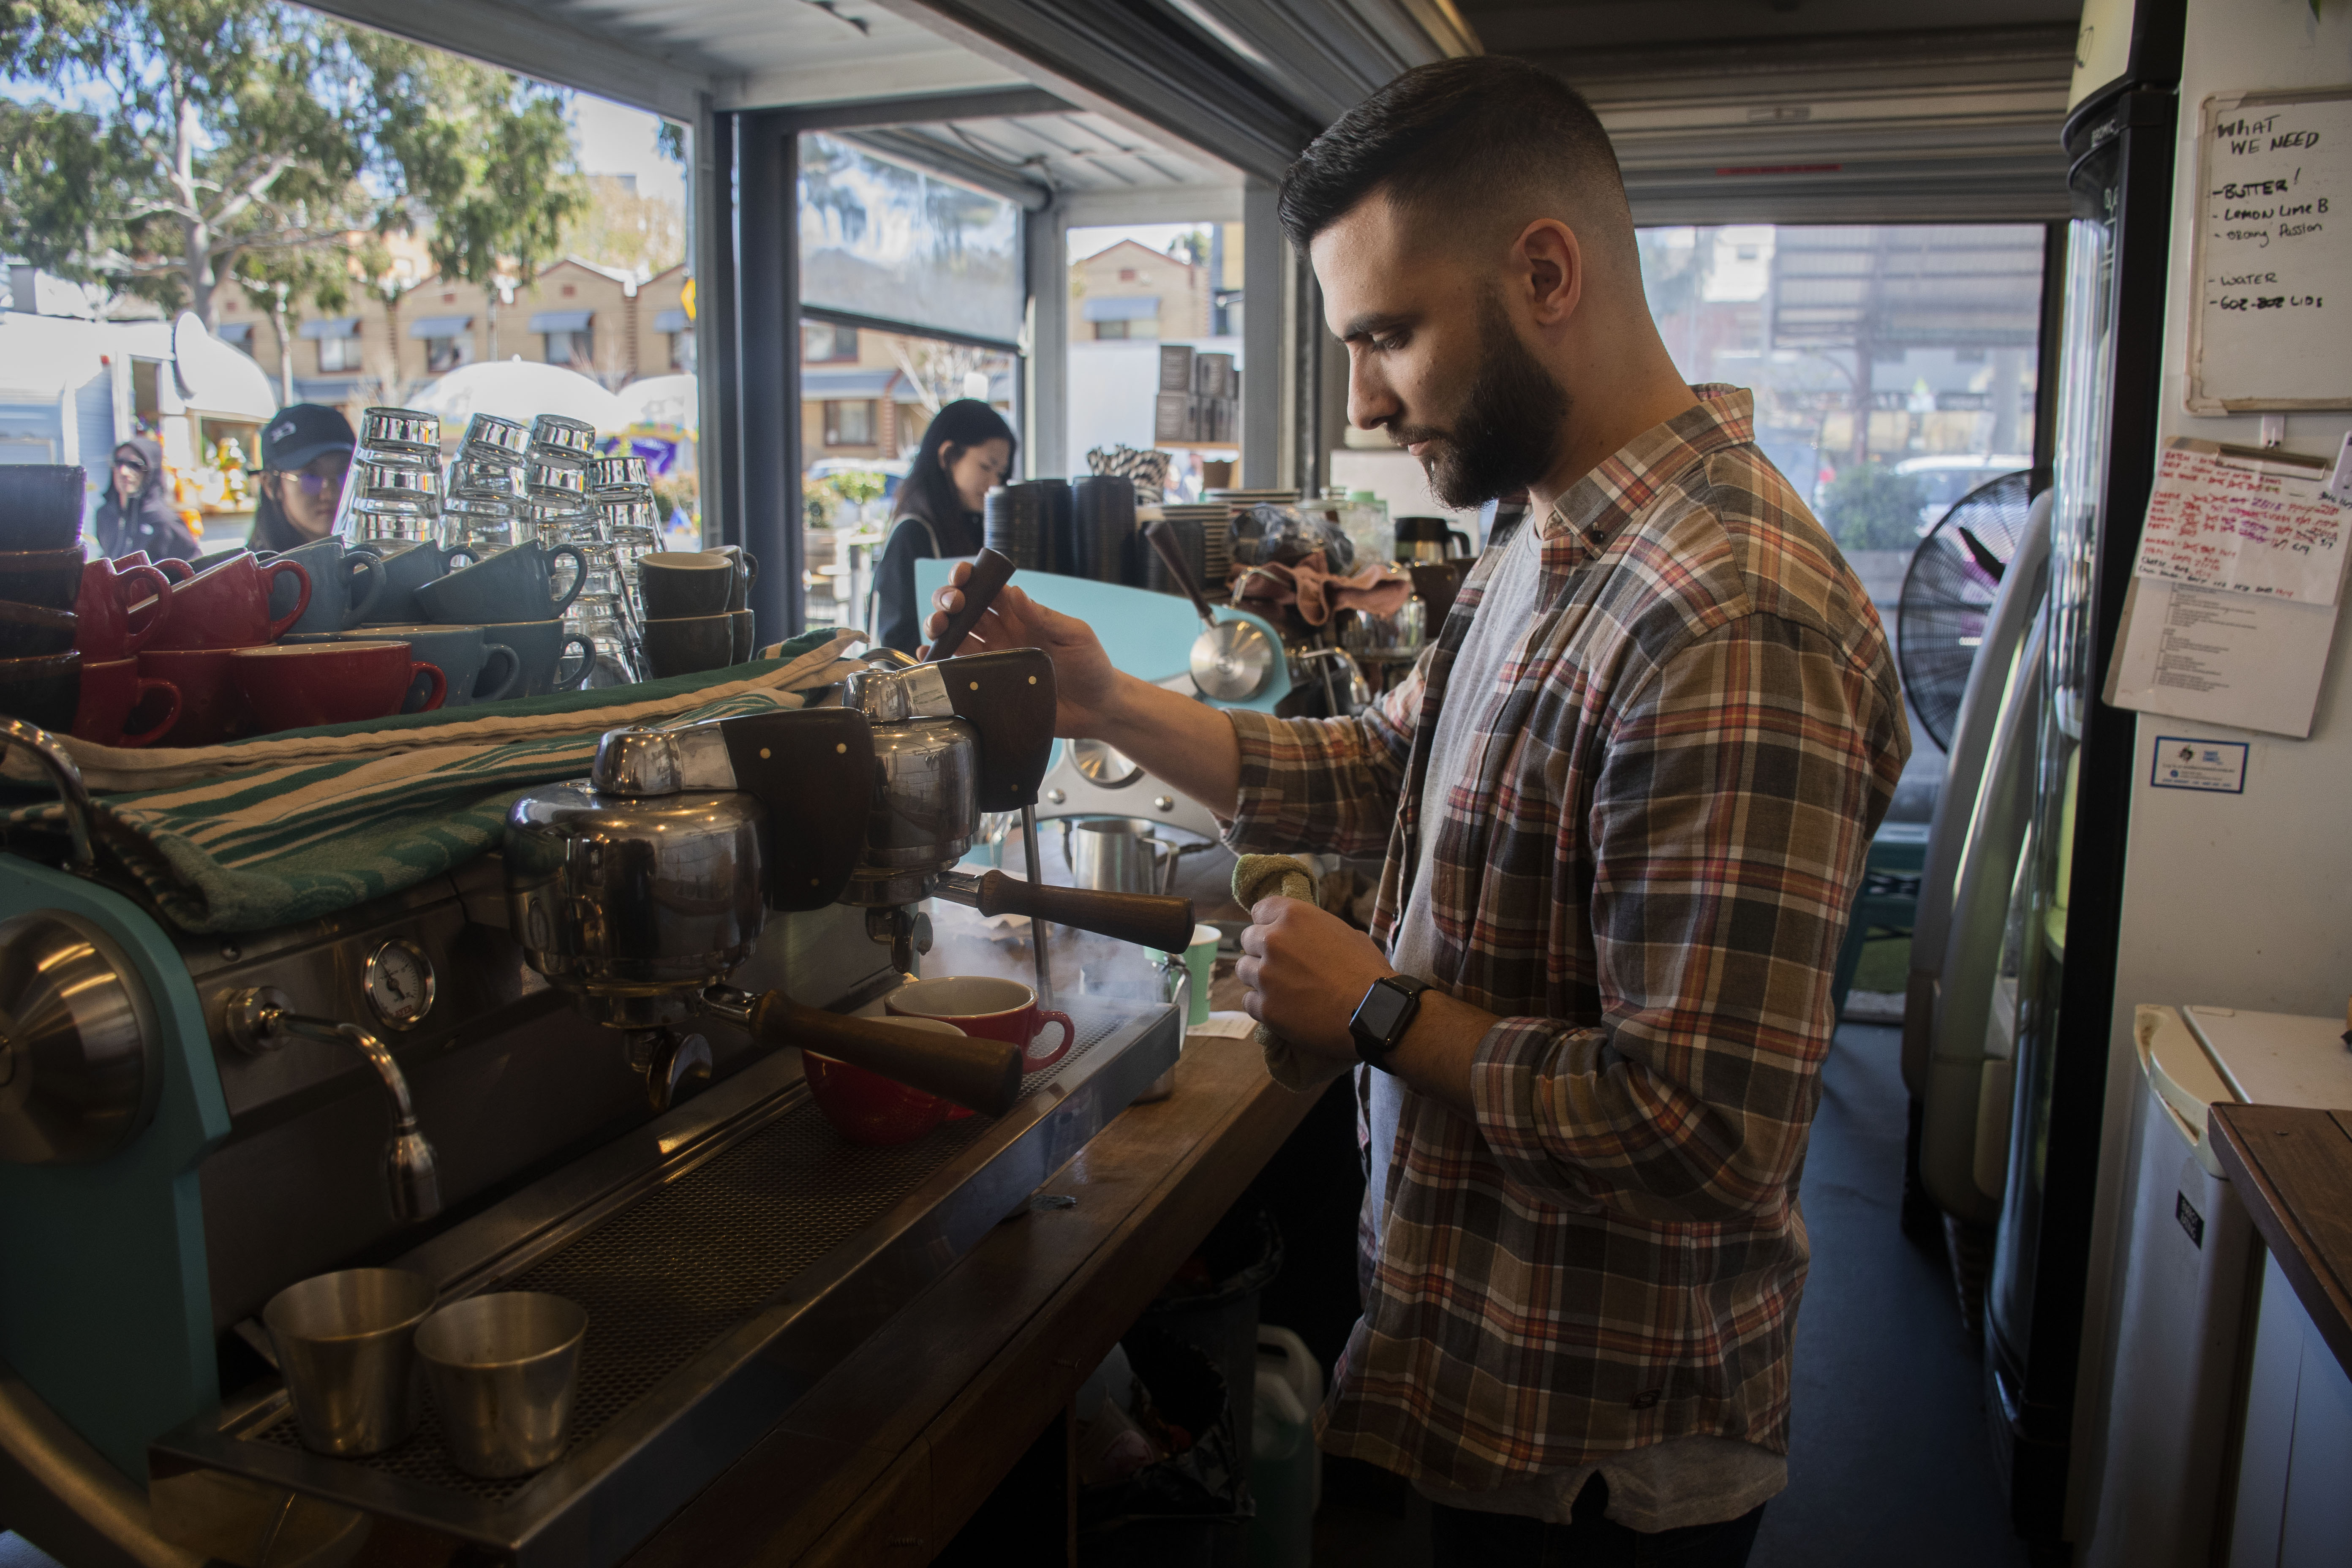 """The average coffee consumption in Melbourne is quite large. Monstafa Elavoubi, the owner of Padre Coffee at the Queen Victoria Market, is makes coffee for his customers, and says that """"we usually sell on average hundreds of cups of coffee a day and thousands a week""""."""